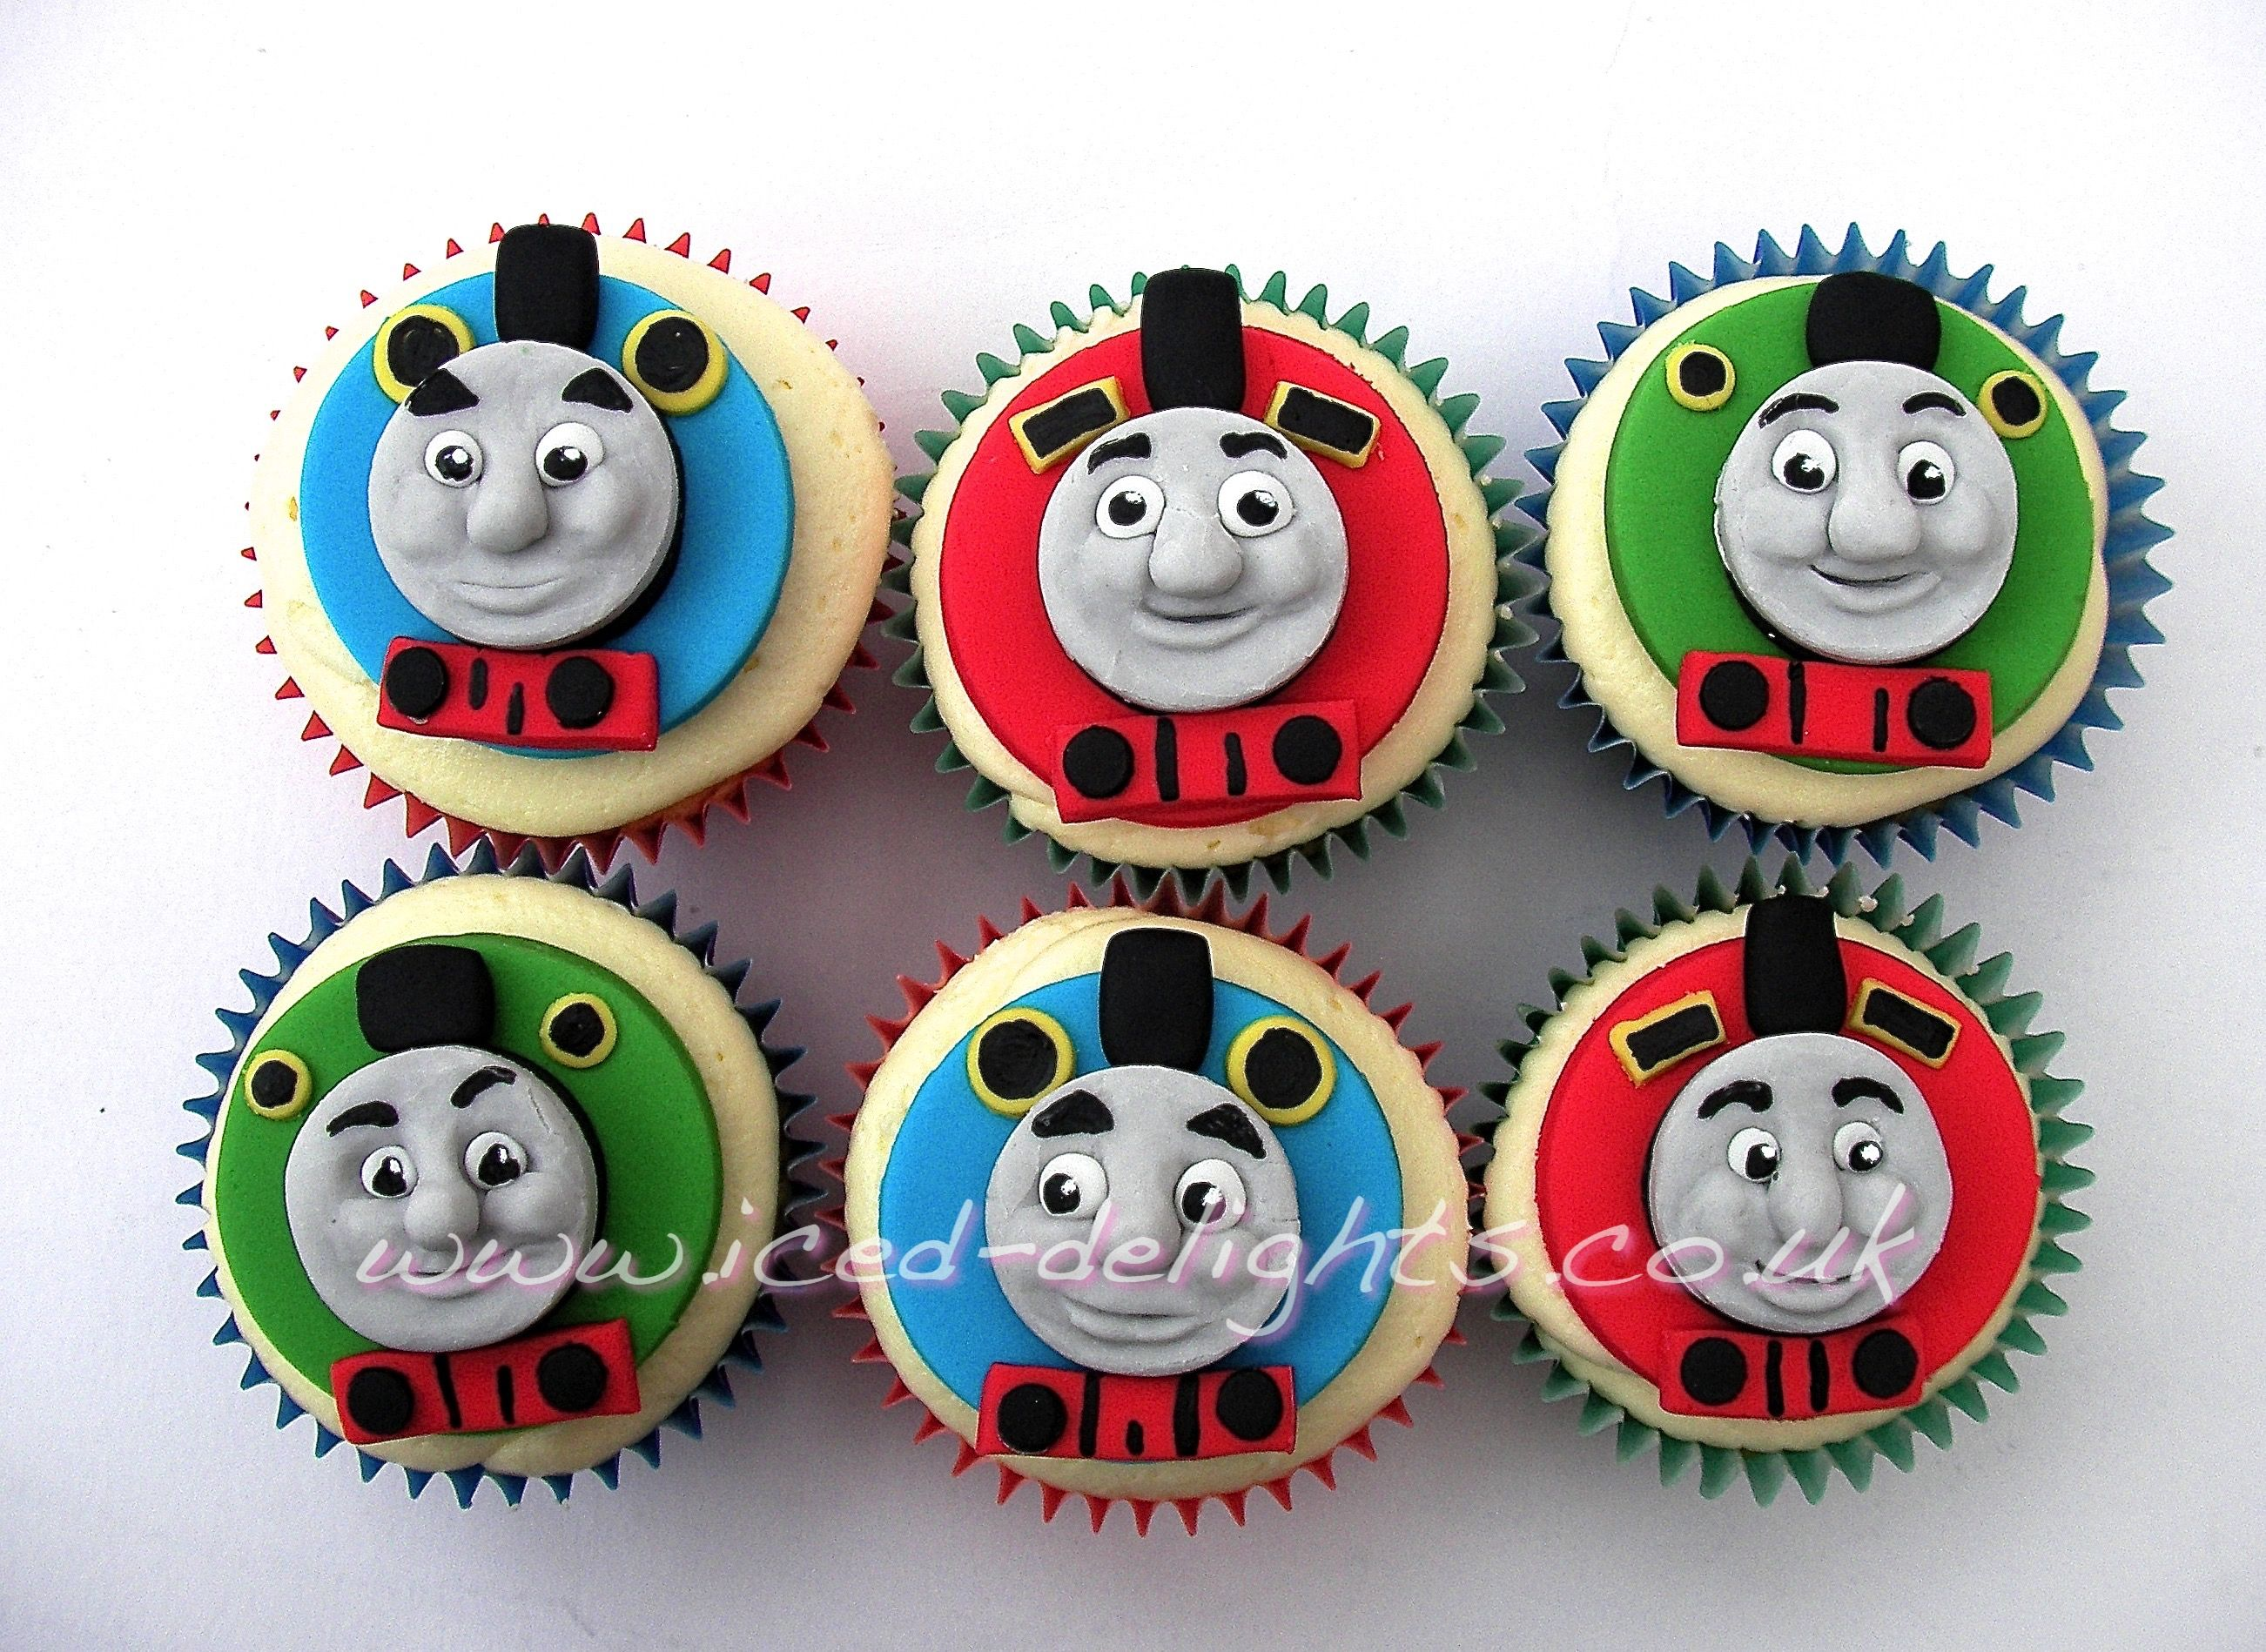 Thomas And Friends Thomas The Tank Engine Cup Cakes Designed By Iced